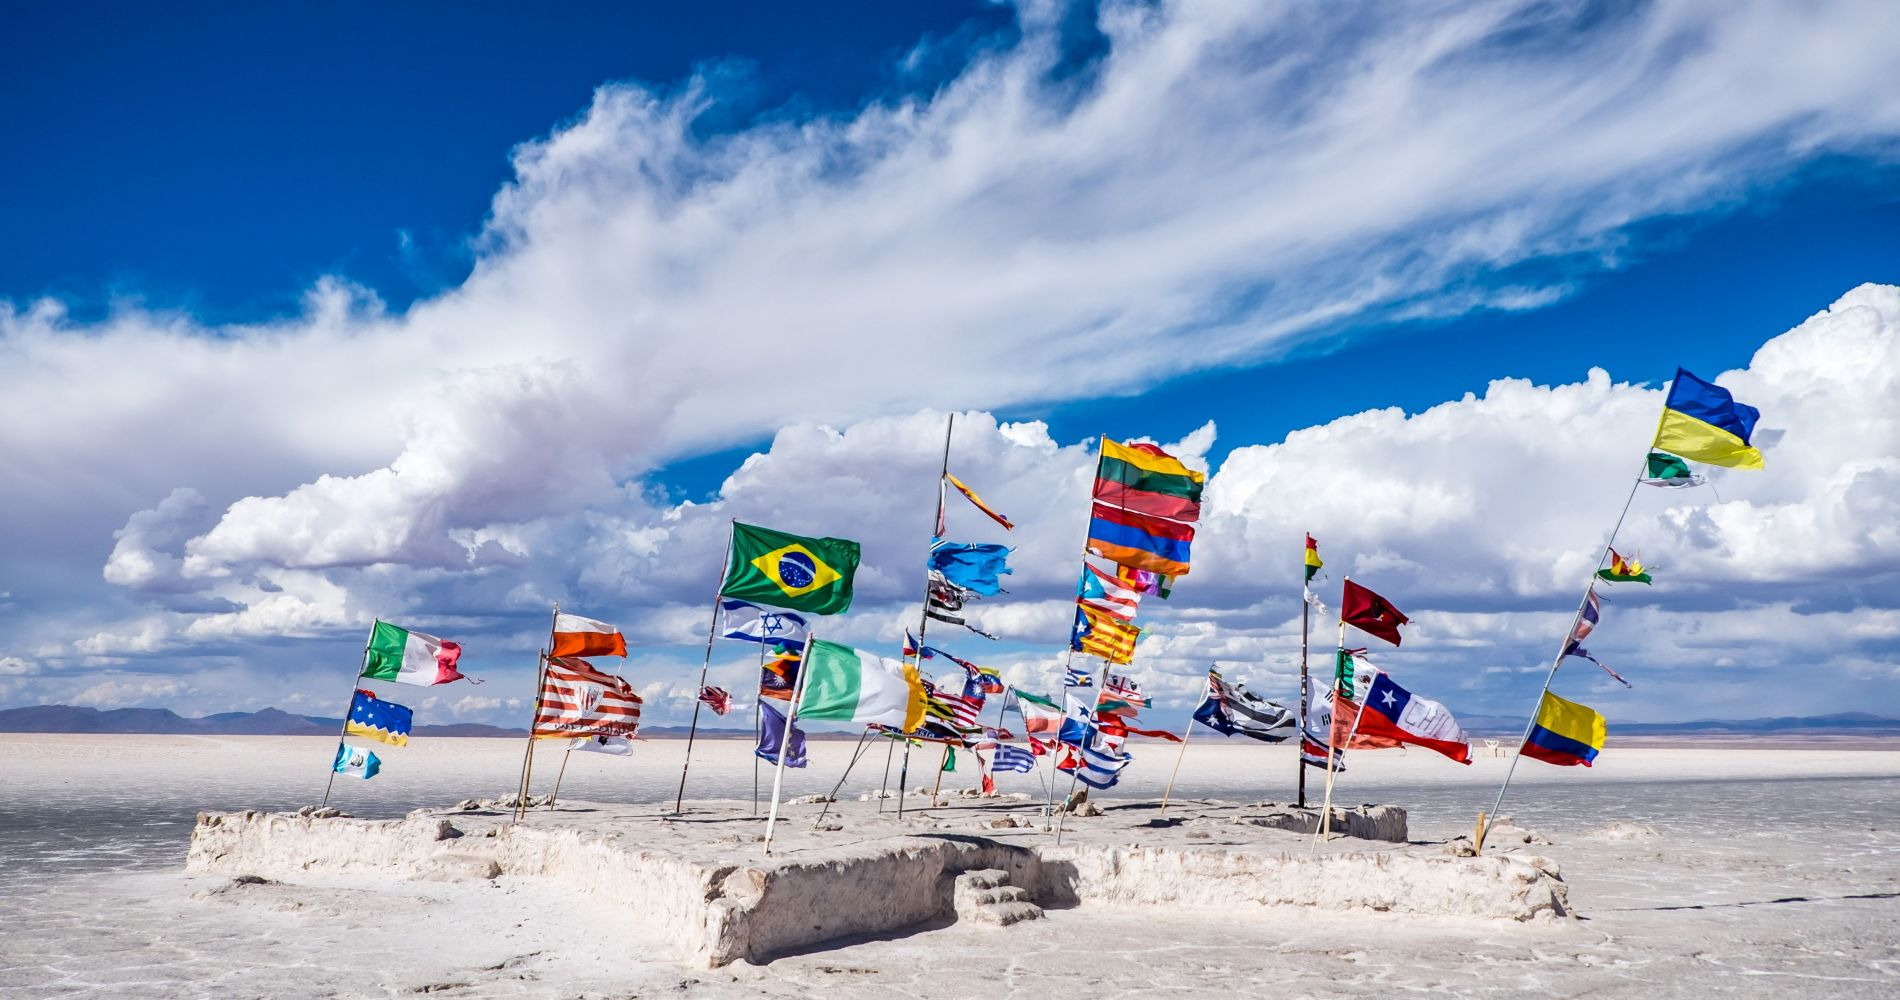 Uyuni Salt Flats Full Day Tour for Two in Bolivia